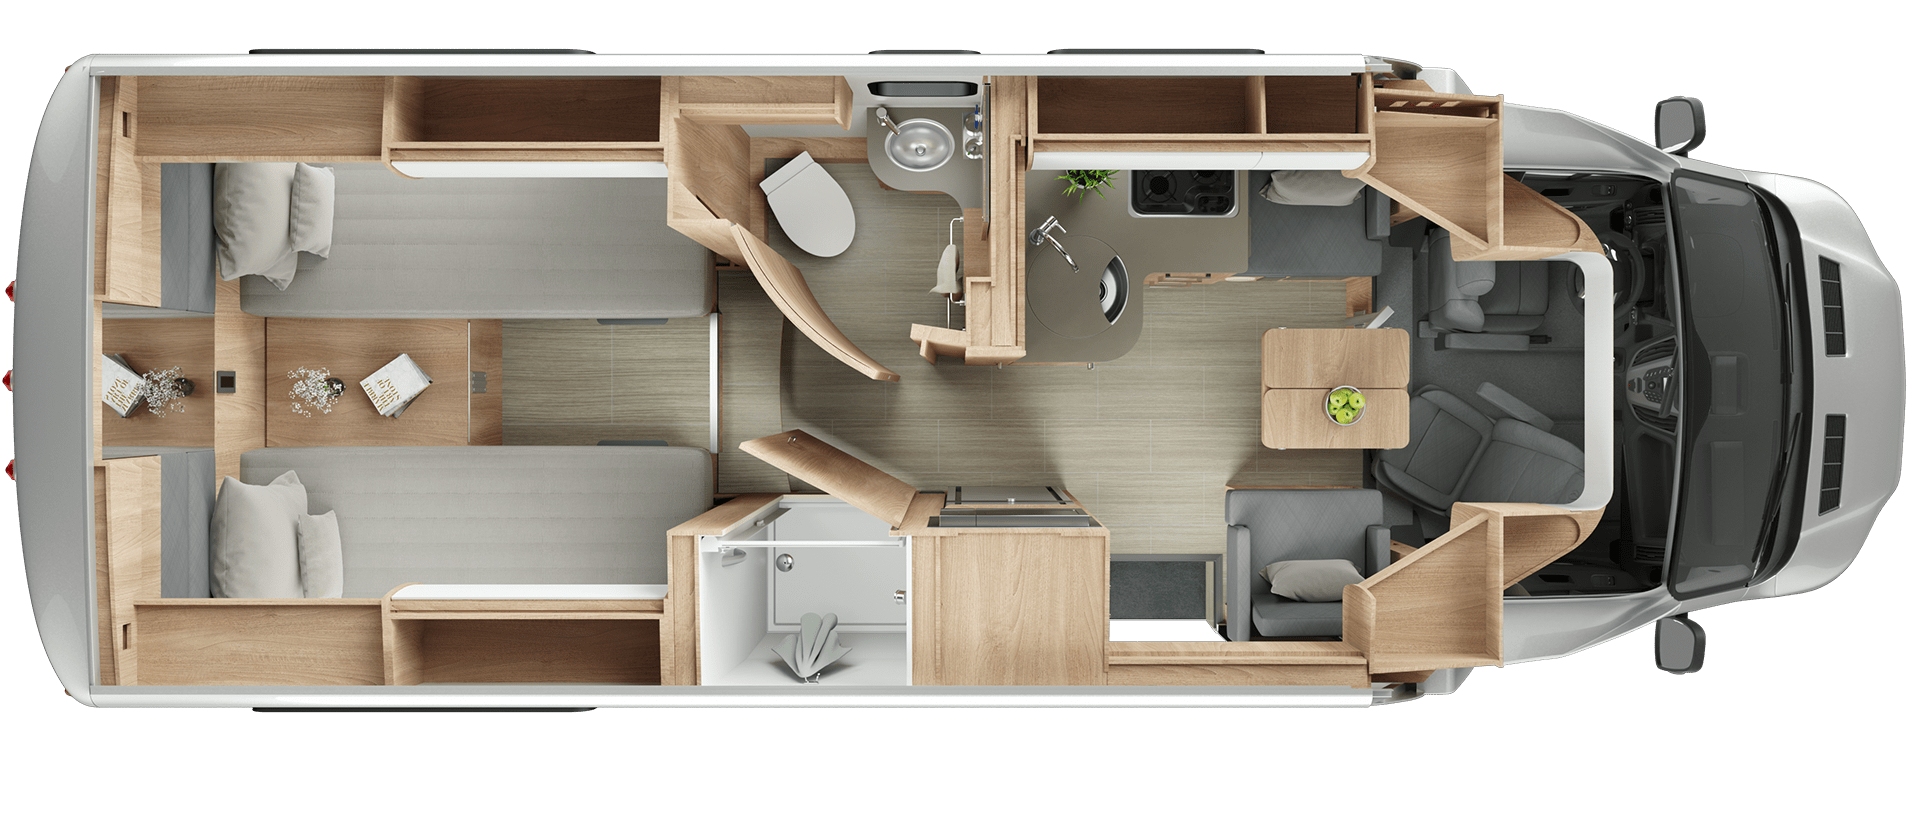 Wonder RTB Floorplan